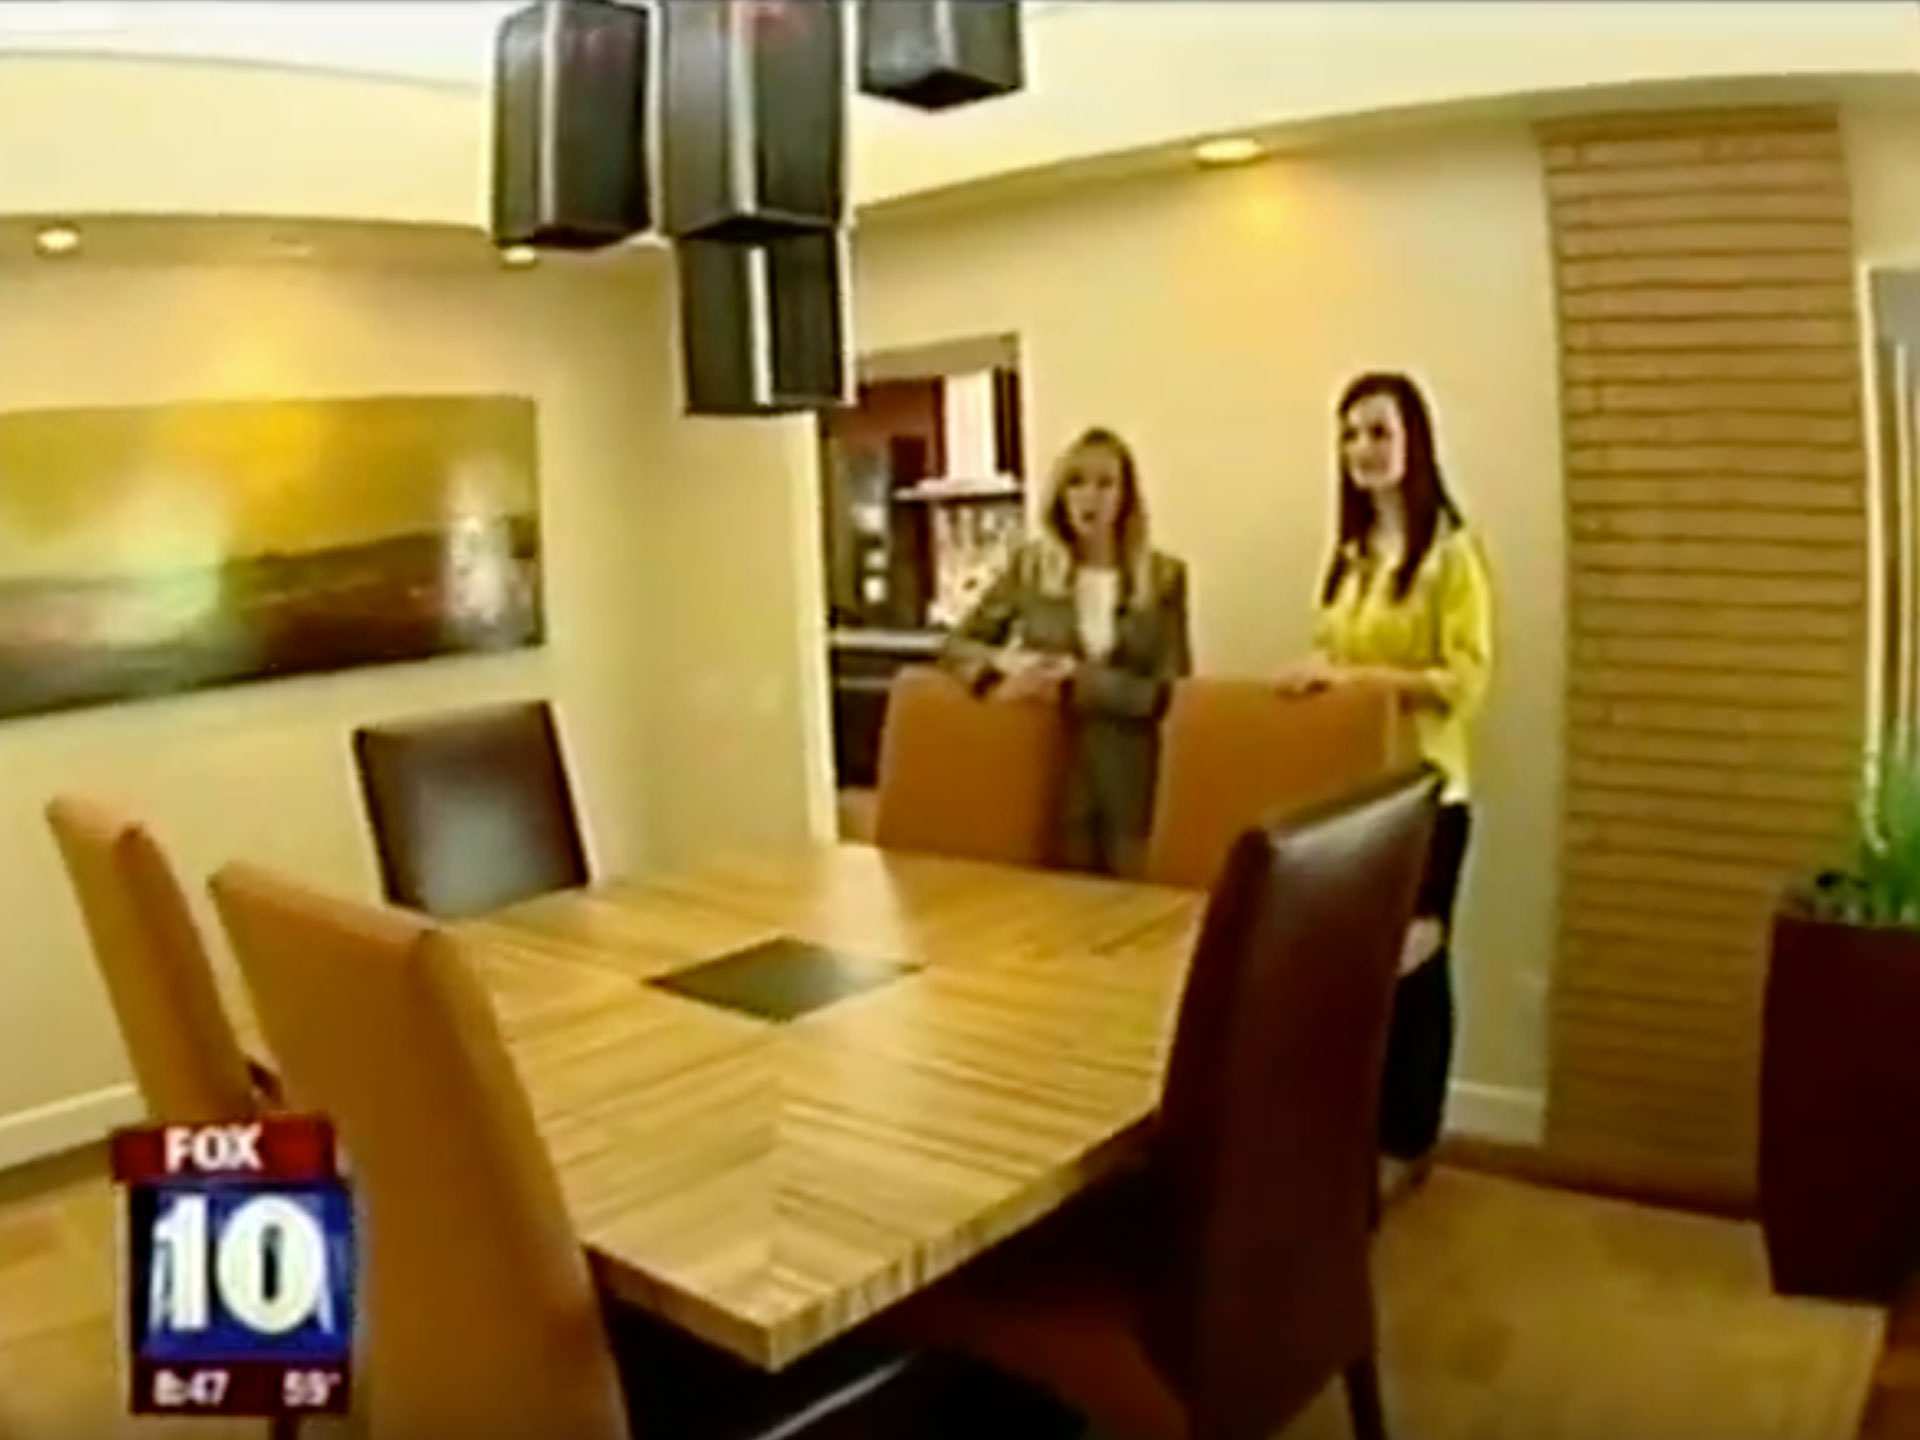 Fox 10 News – Cool House